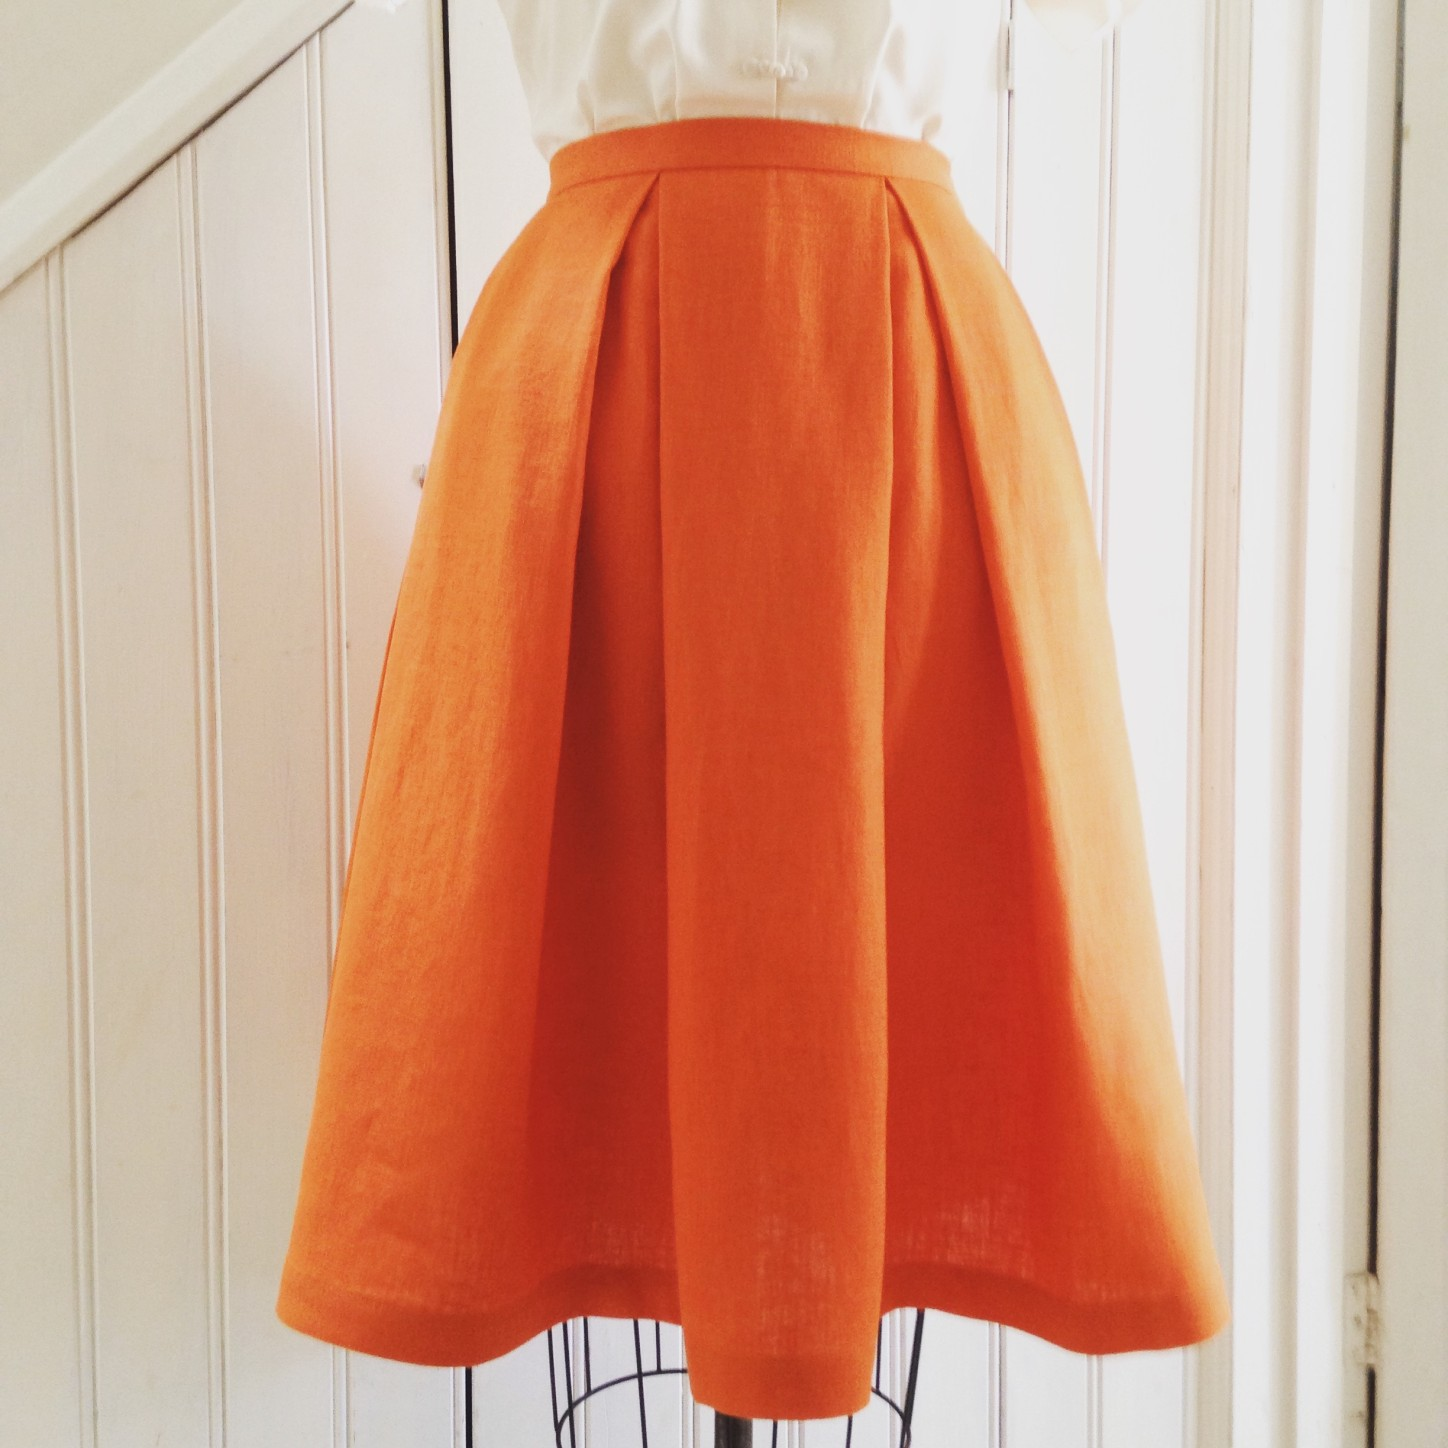 A Little Post About Making Box Pleated Skirts | sew VeraVenus